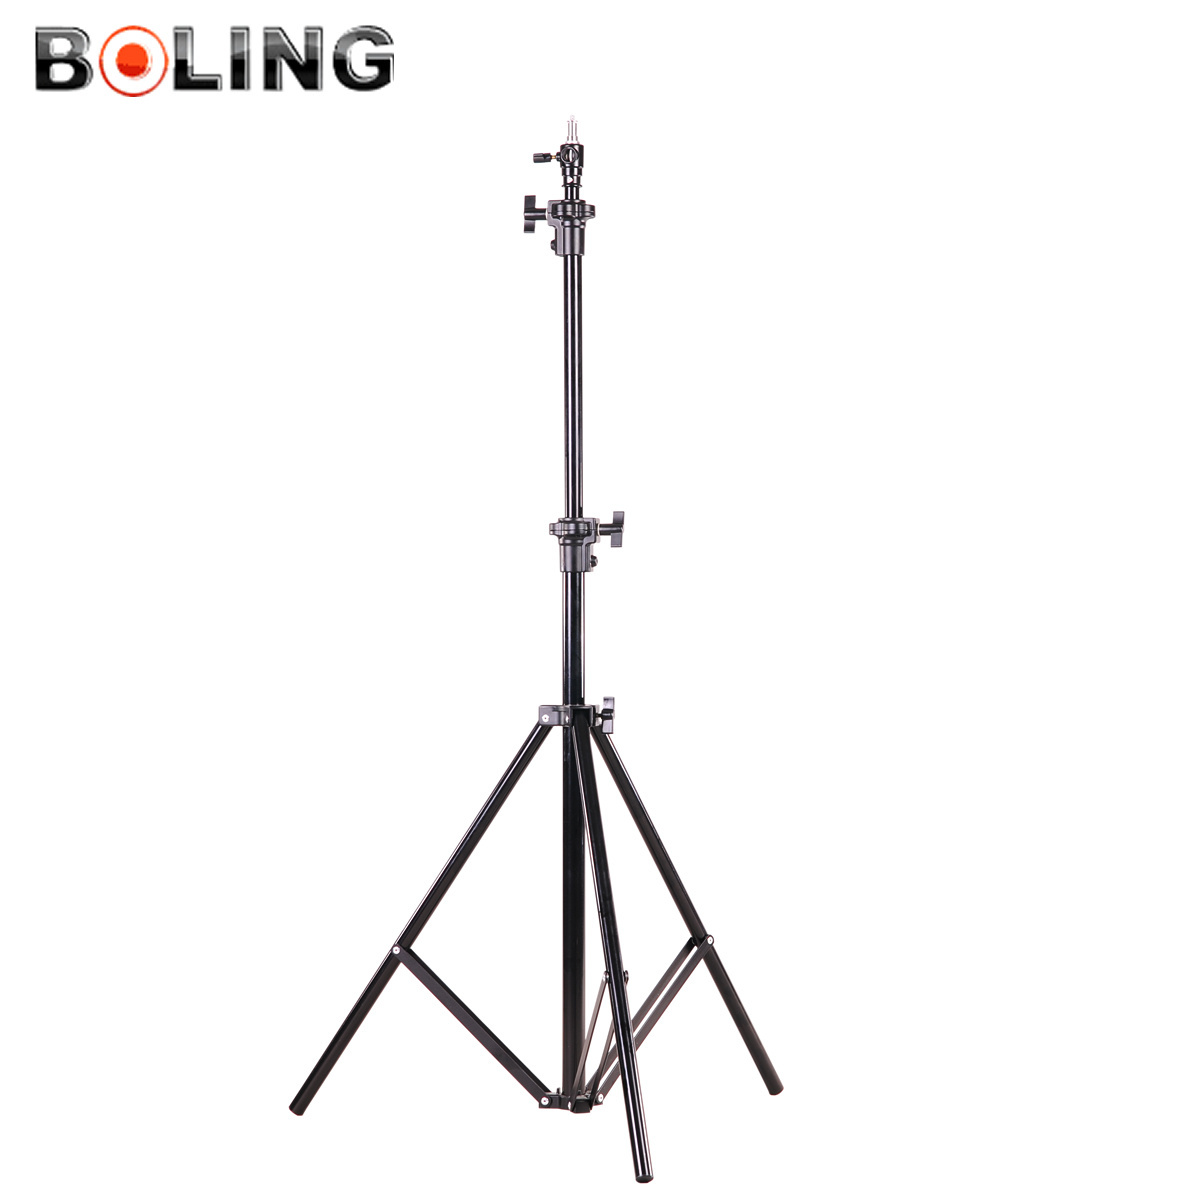 wholesale Photographic equipment boling light type gb-260 air stands aluminum alloy<br><br>Aliexpress